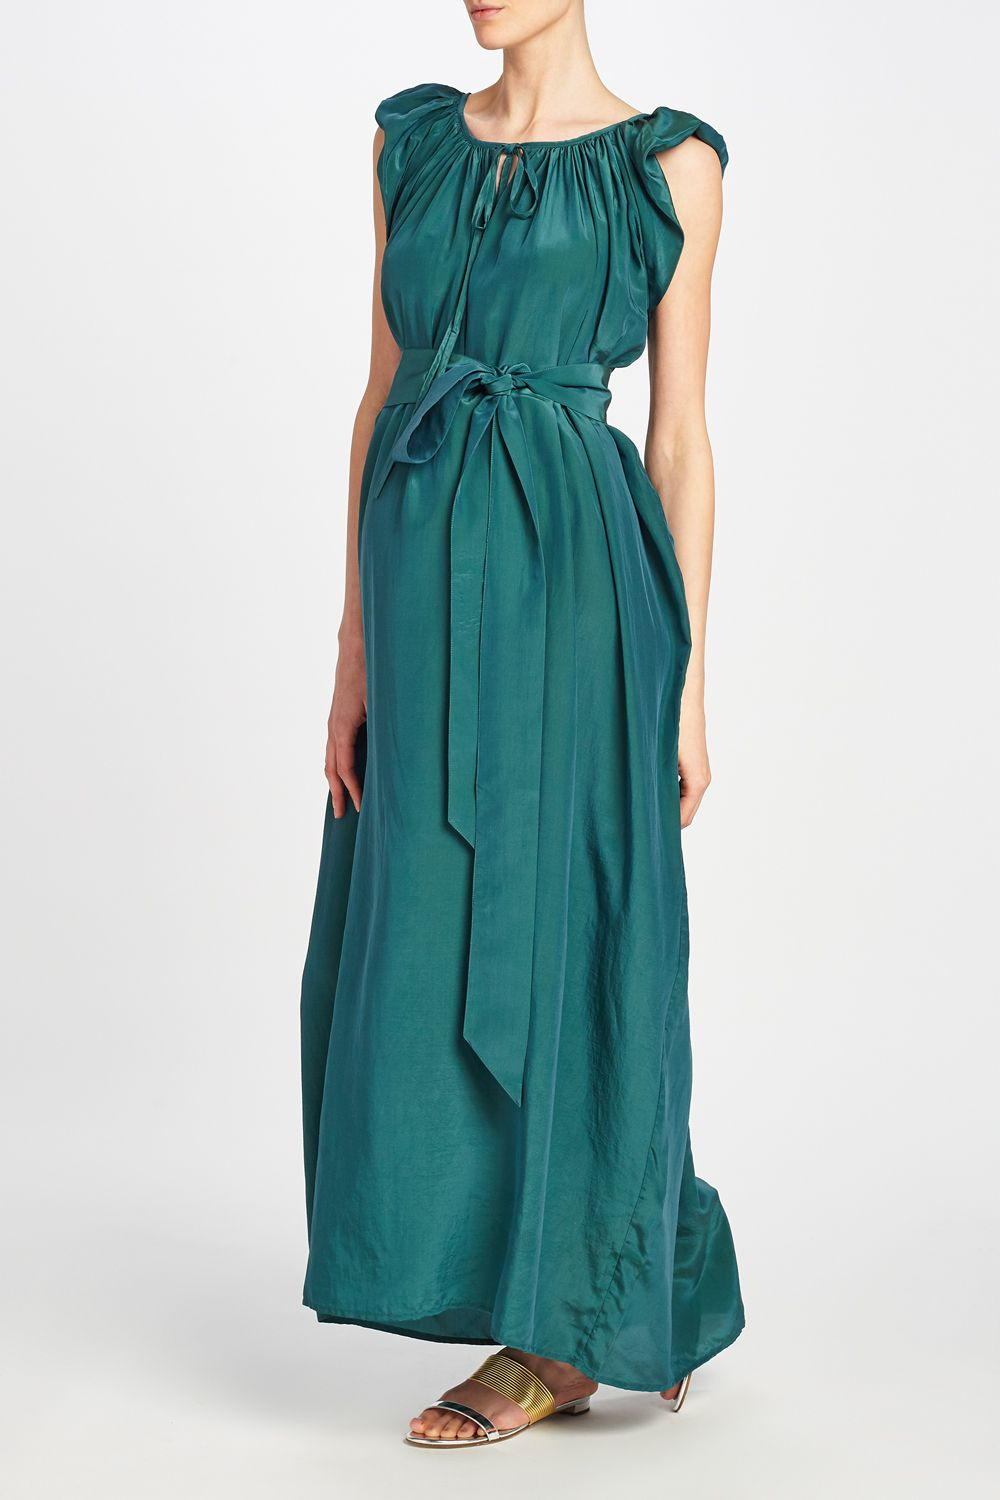 0e15f263ba KALITA - Andromeda Nights Dress. Elegant and timeless full length dress in  emerald green and hand-dyed in Bali.  TheExpectantEdit